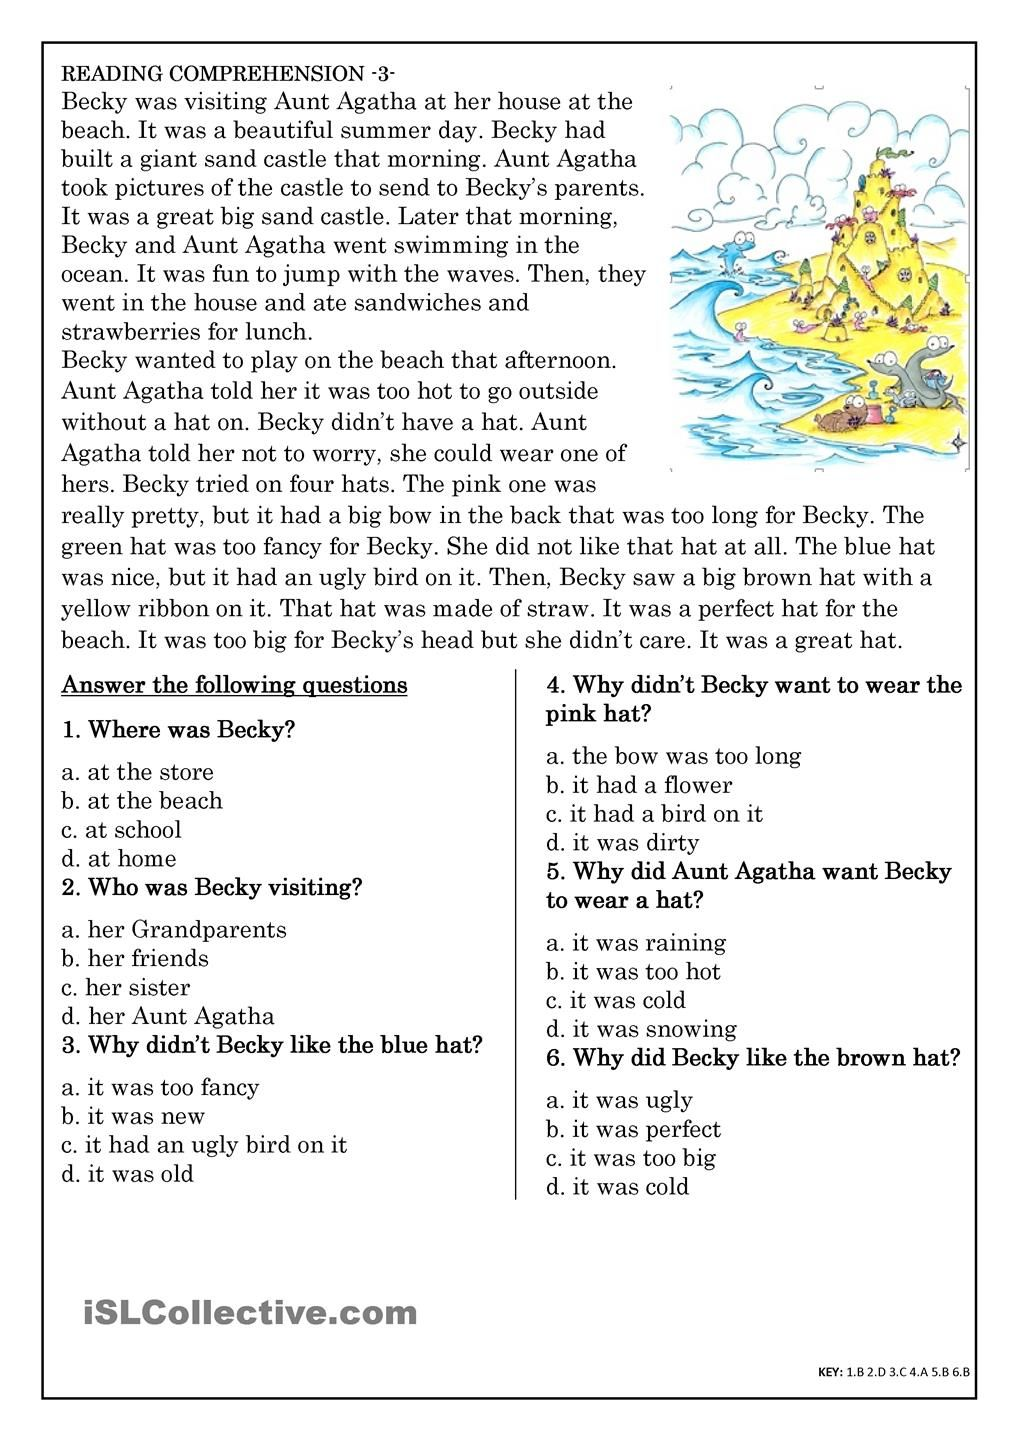 Worksheets Free Reading Comprehension Worksheets For 3rd Grade reading comprehension for beginner and elementary students 3 esl worksheet free printable worksheets made by teachers